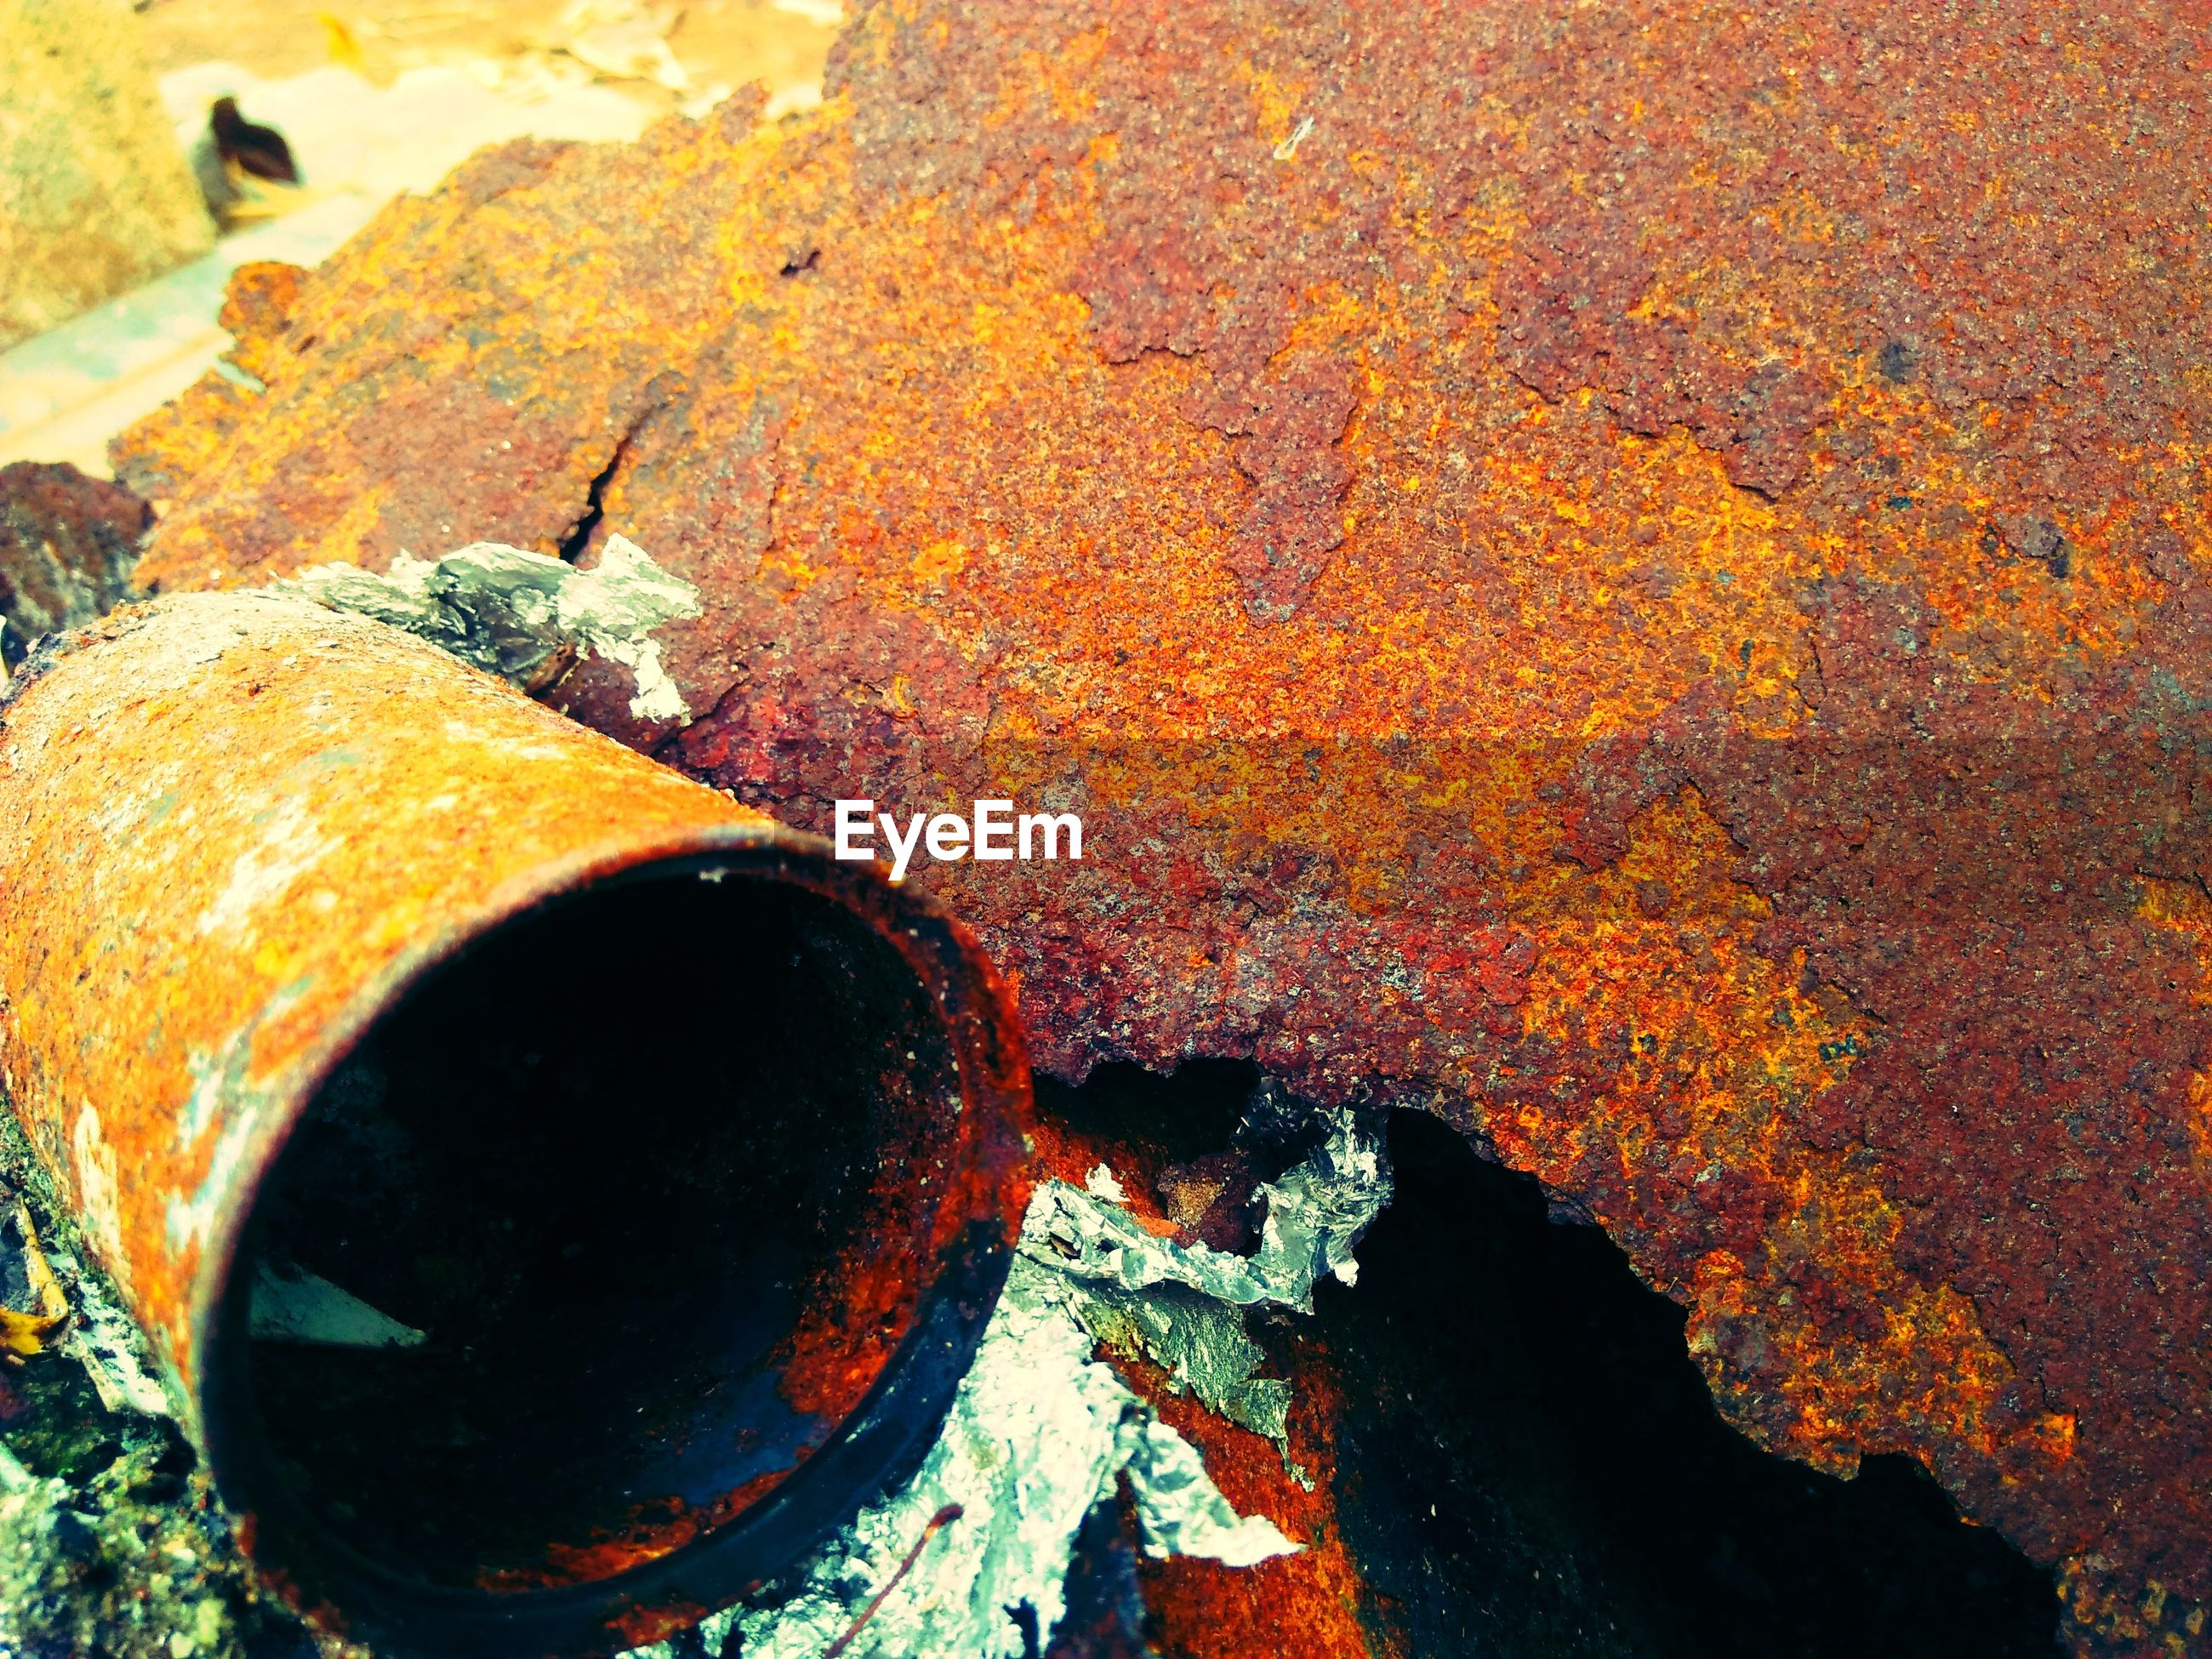 Close-up of rusty metal pipe